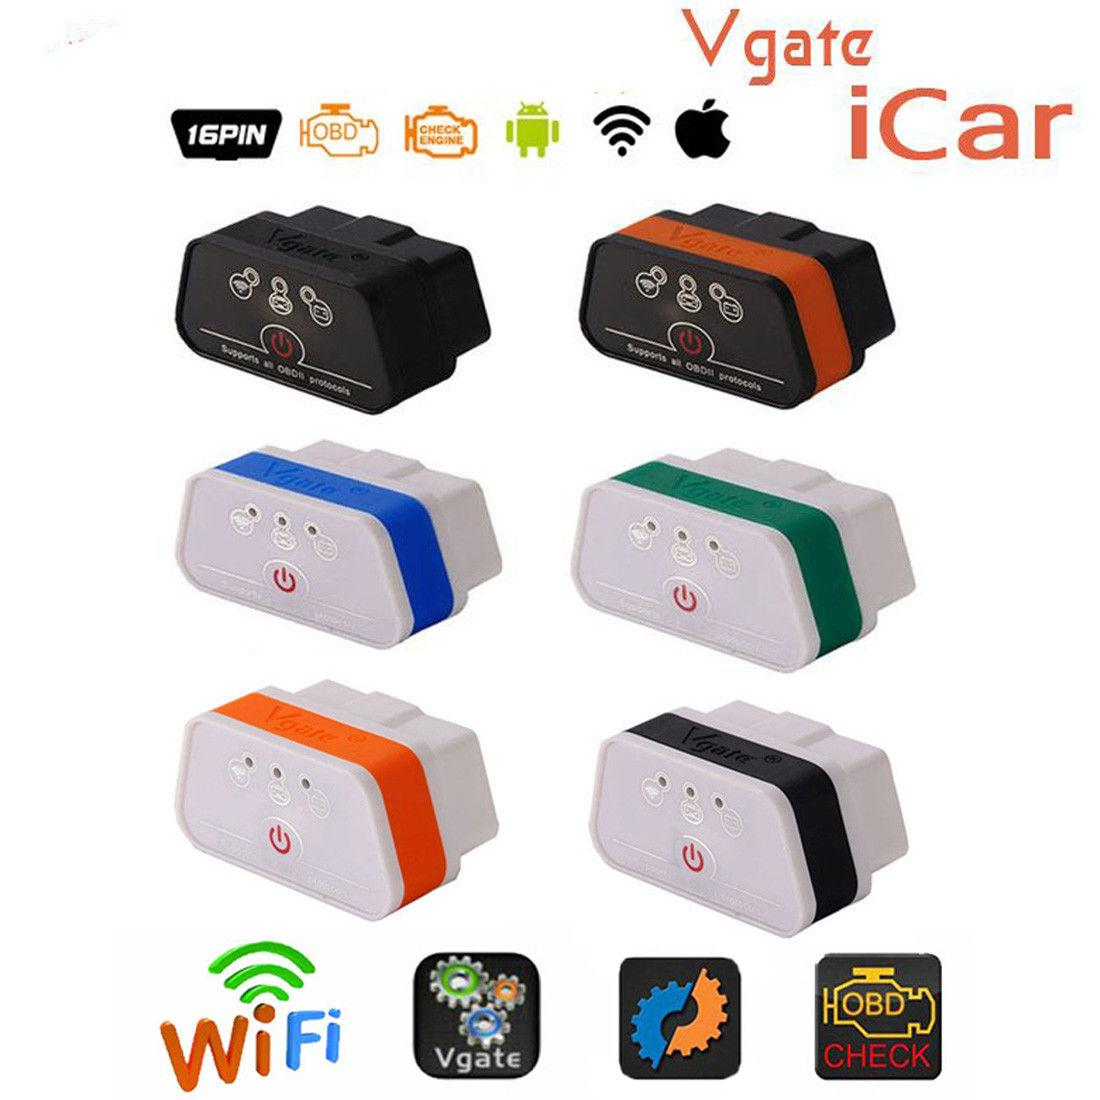 Vgate icar2 Wifi OBD2 Diagnostic-tool ELM327 wifi OBD 2 Scanner Mini ELM327 for android/PC/IOS Code Reader